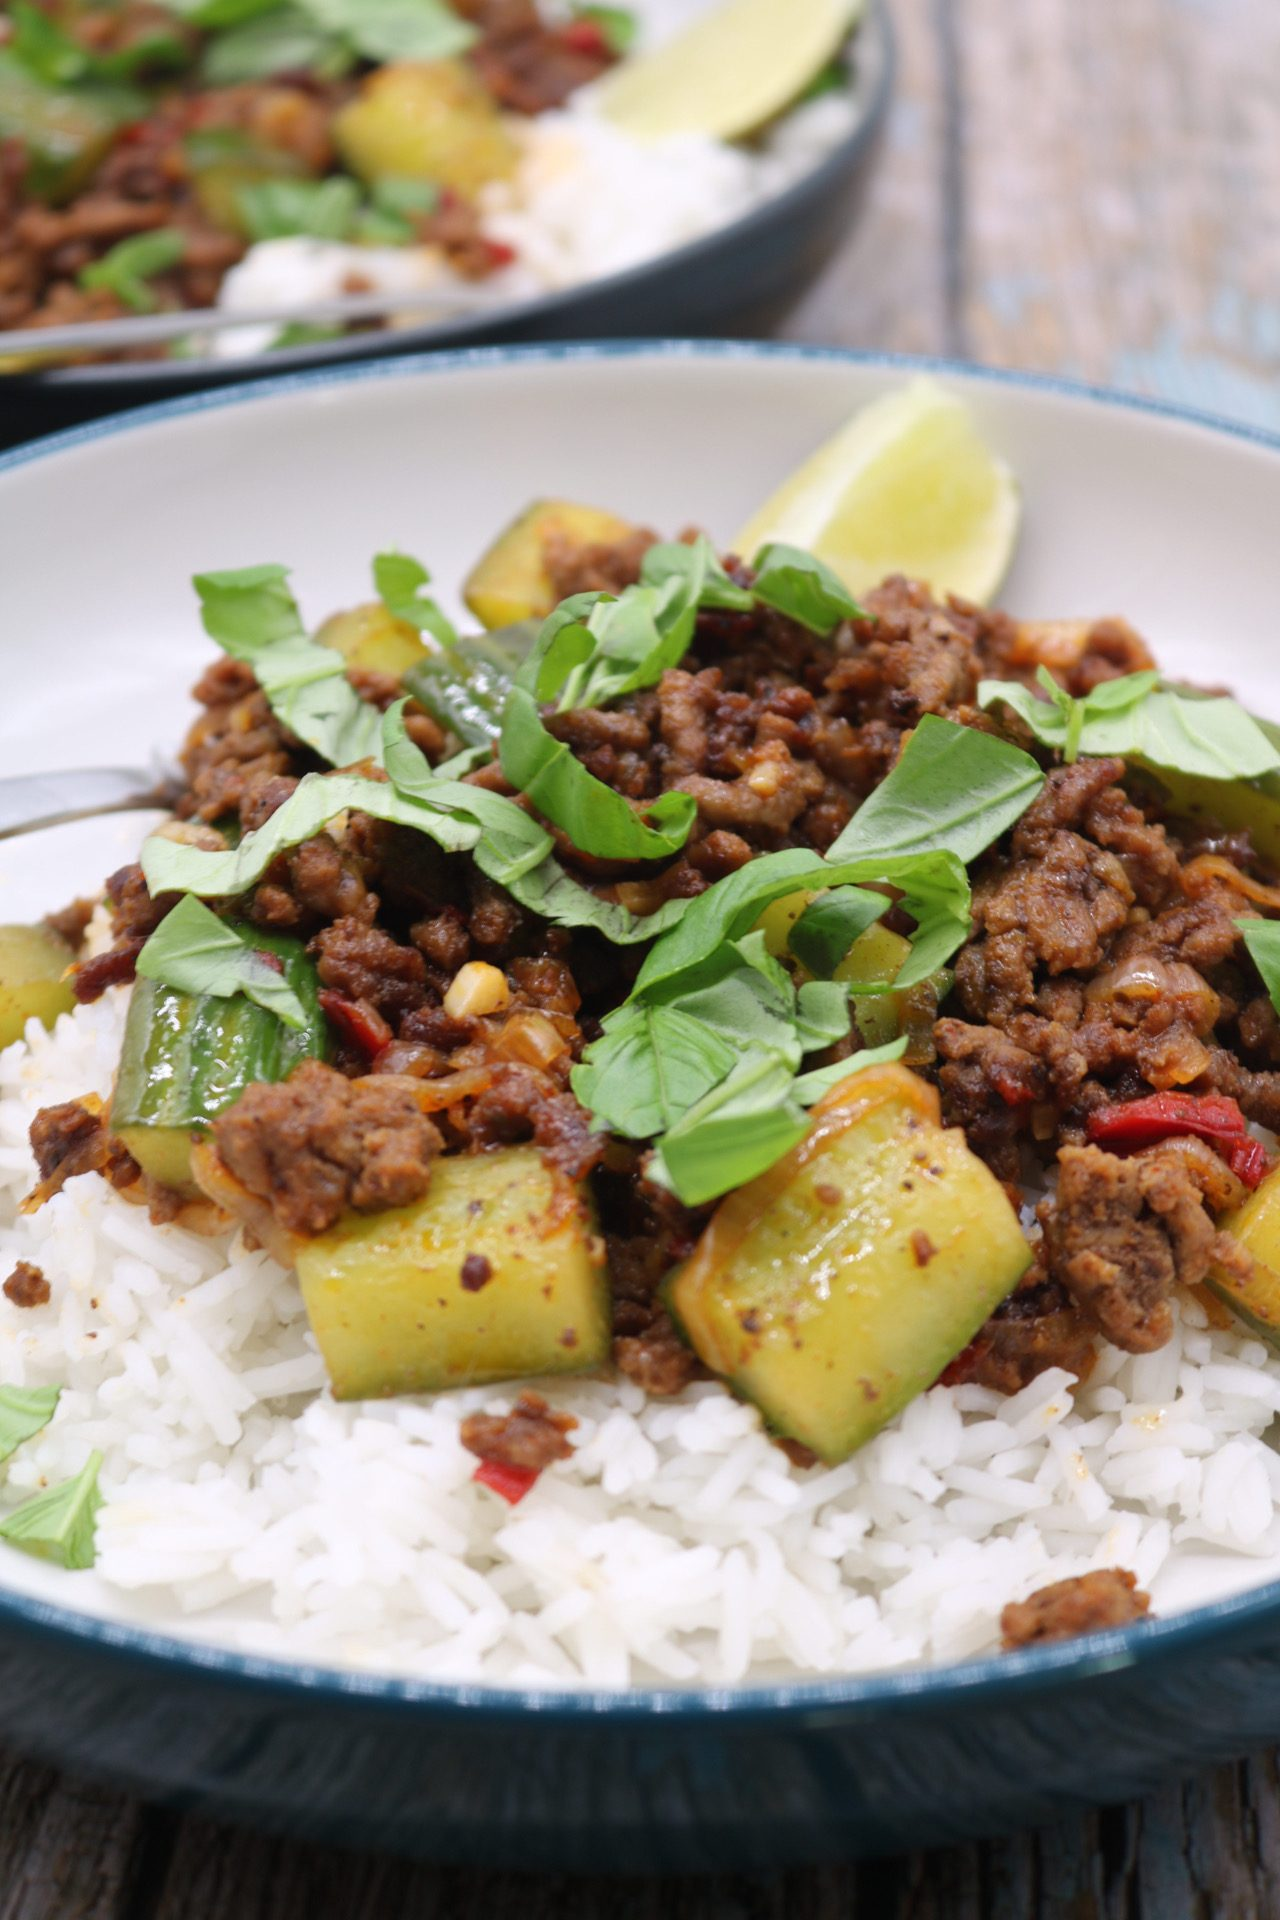 Spicy Beef and Crushed Cucumber Stir-Fry, Spicy Beef and Crushed Cucumber Stir-Fry